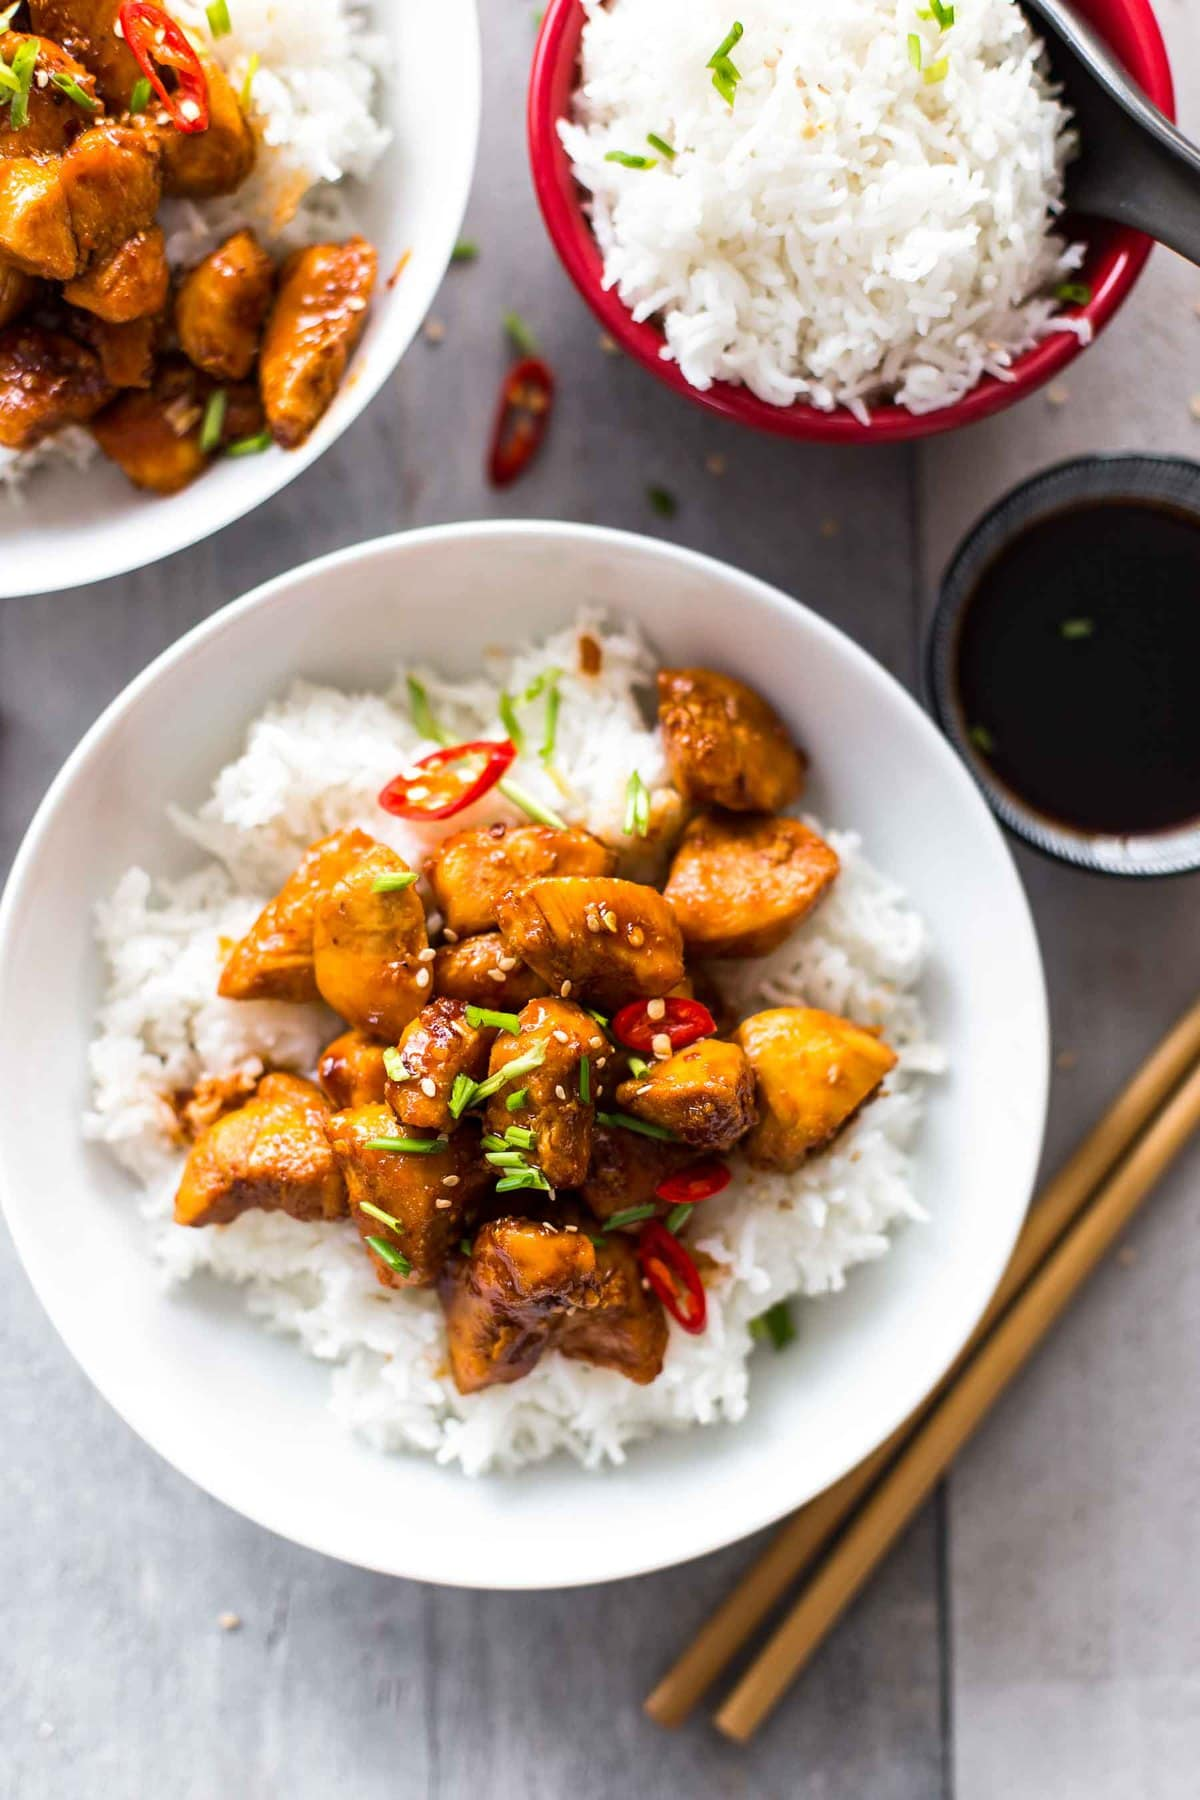 bowls of white rice and bourbon chicken on a table